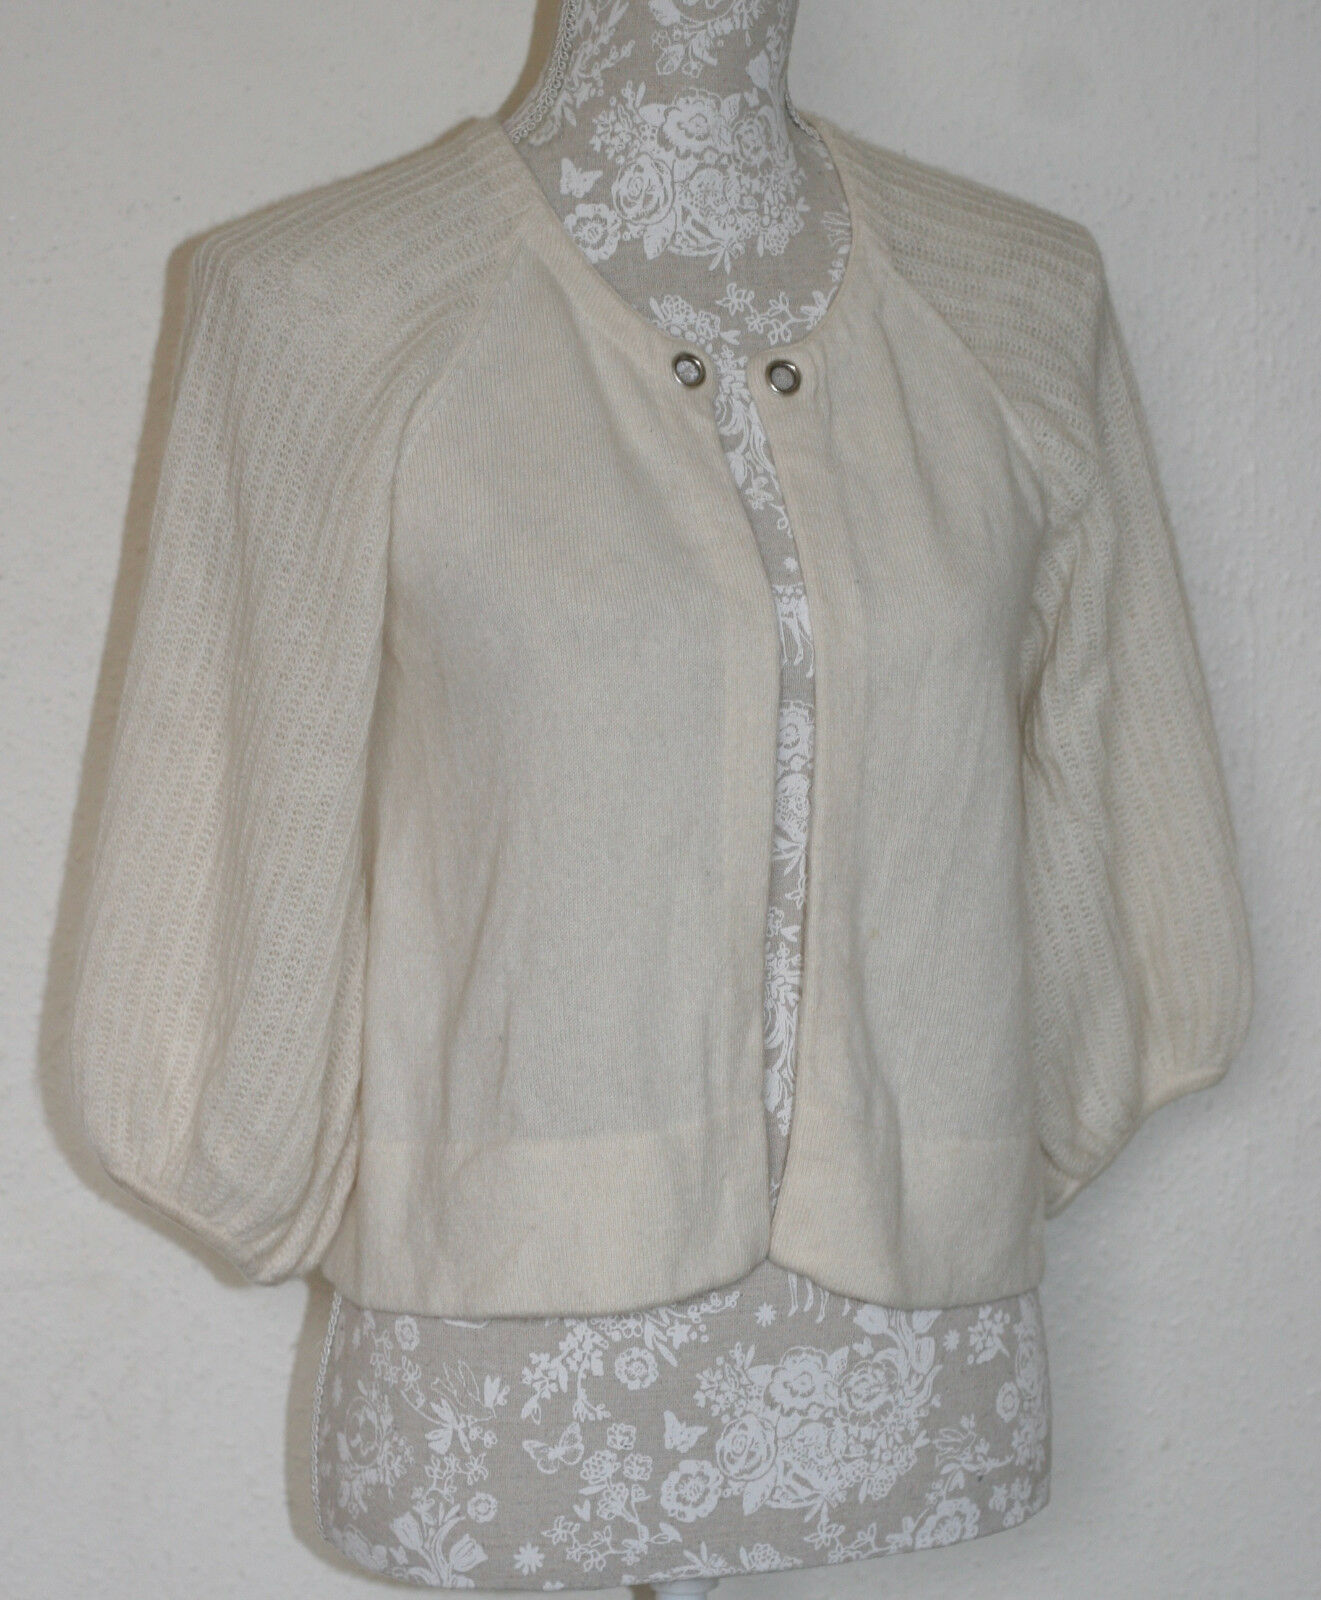 100% CASHMERE M M M 12 CHRISTOPHER FISCHER CREAM BEAUTIFUL SLEEVE SHRUG CARDIGAN bf59ef